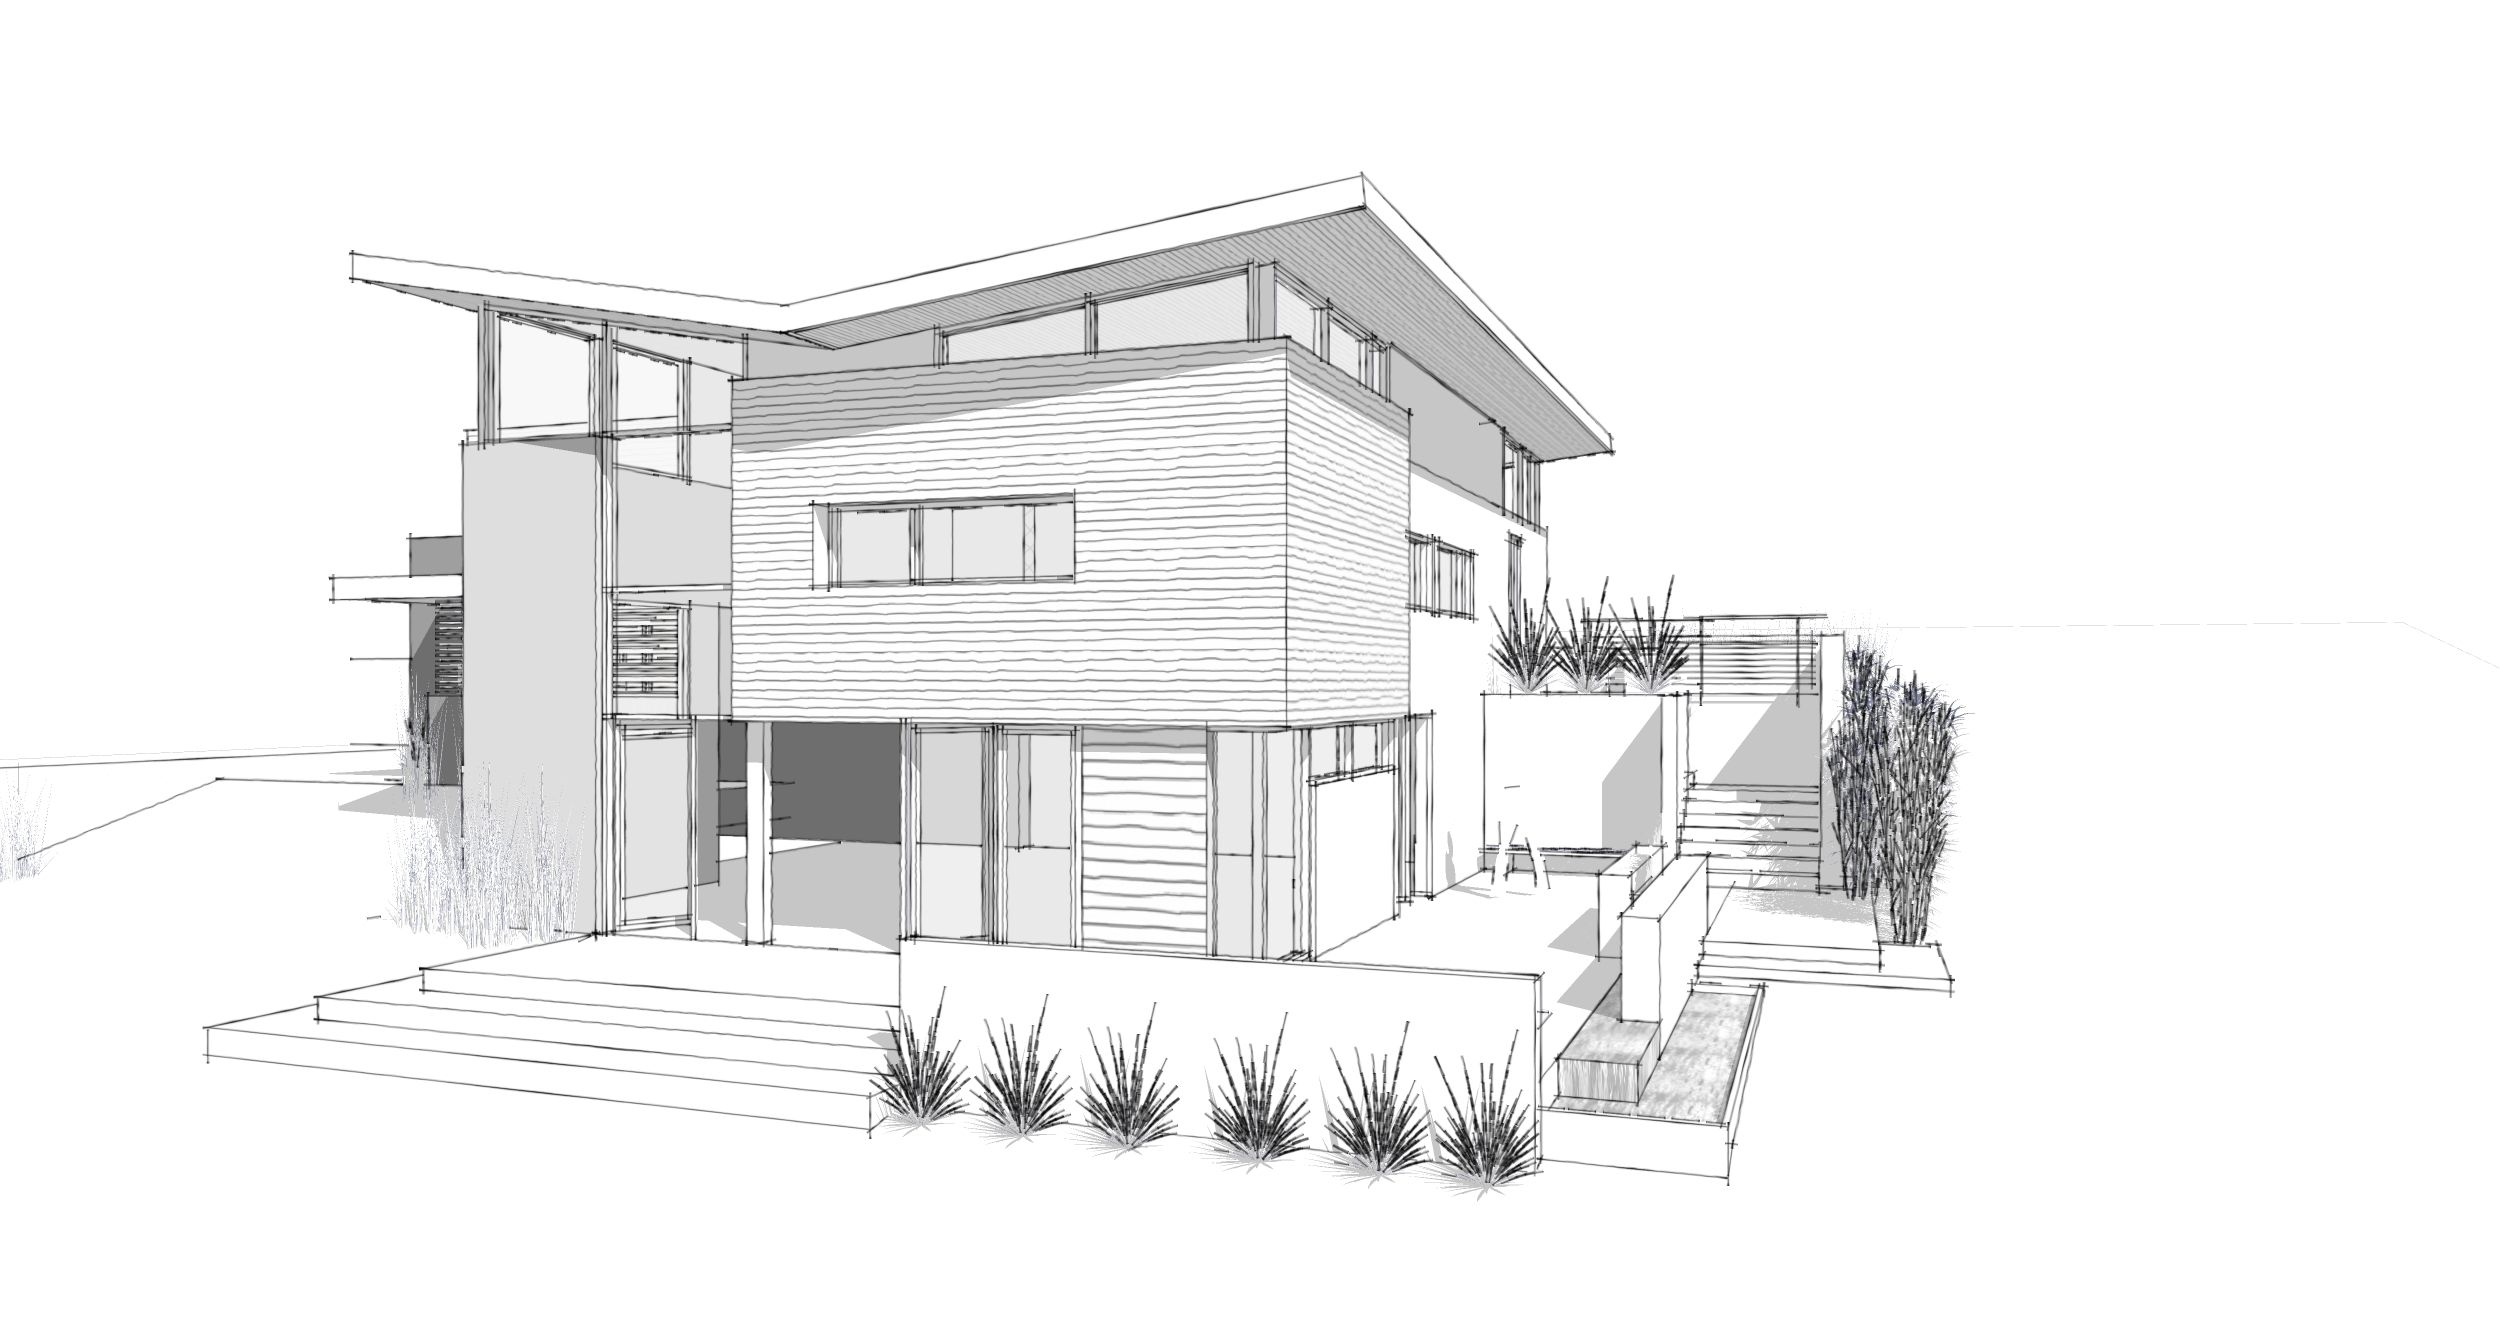 Modern home architecture sketches design ideas 13435 for Architecture house drawing